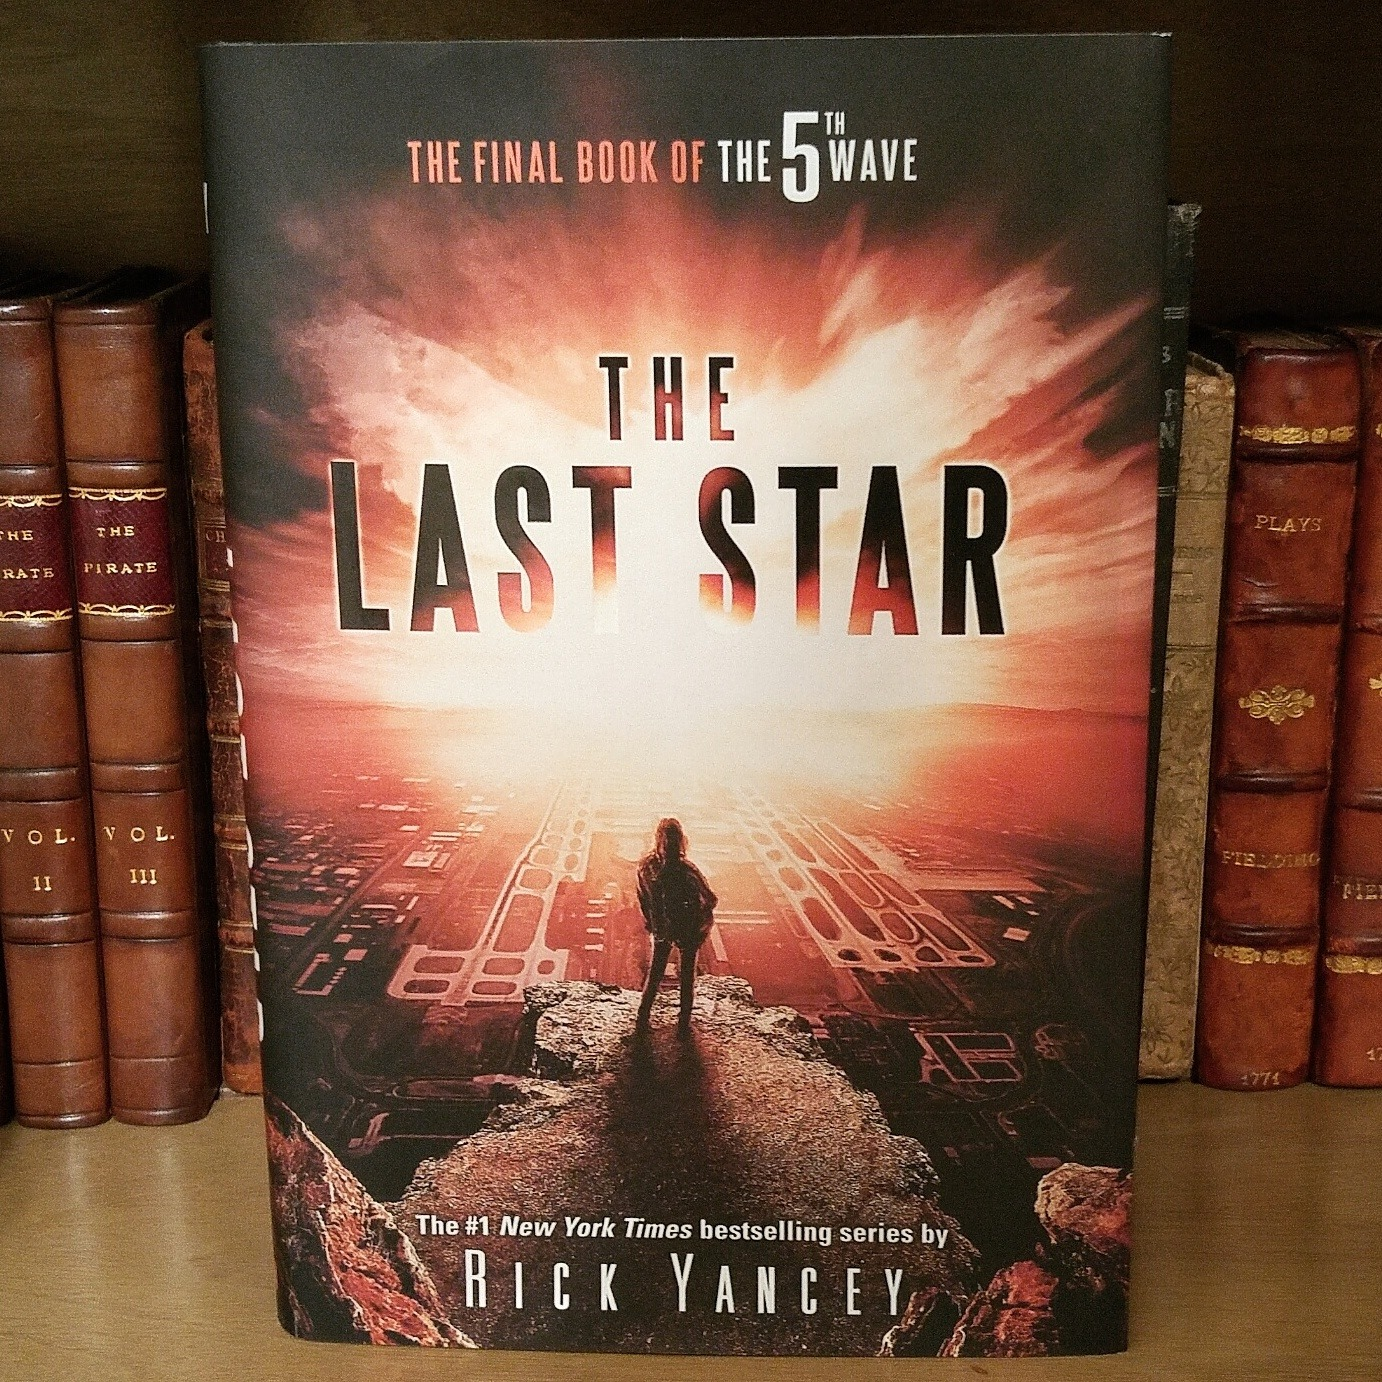 The Last Star by Rick Yancey